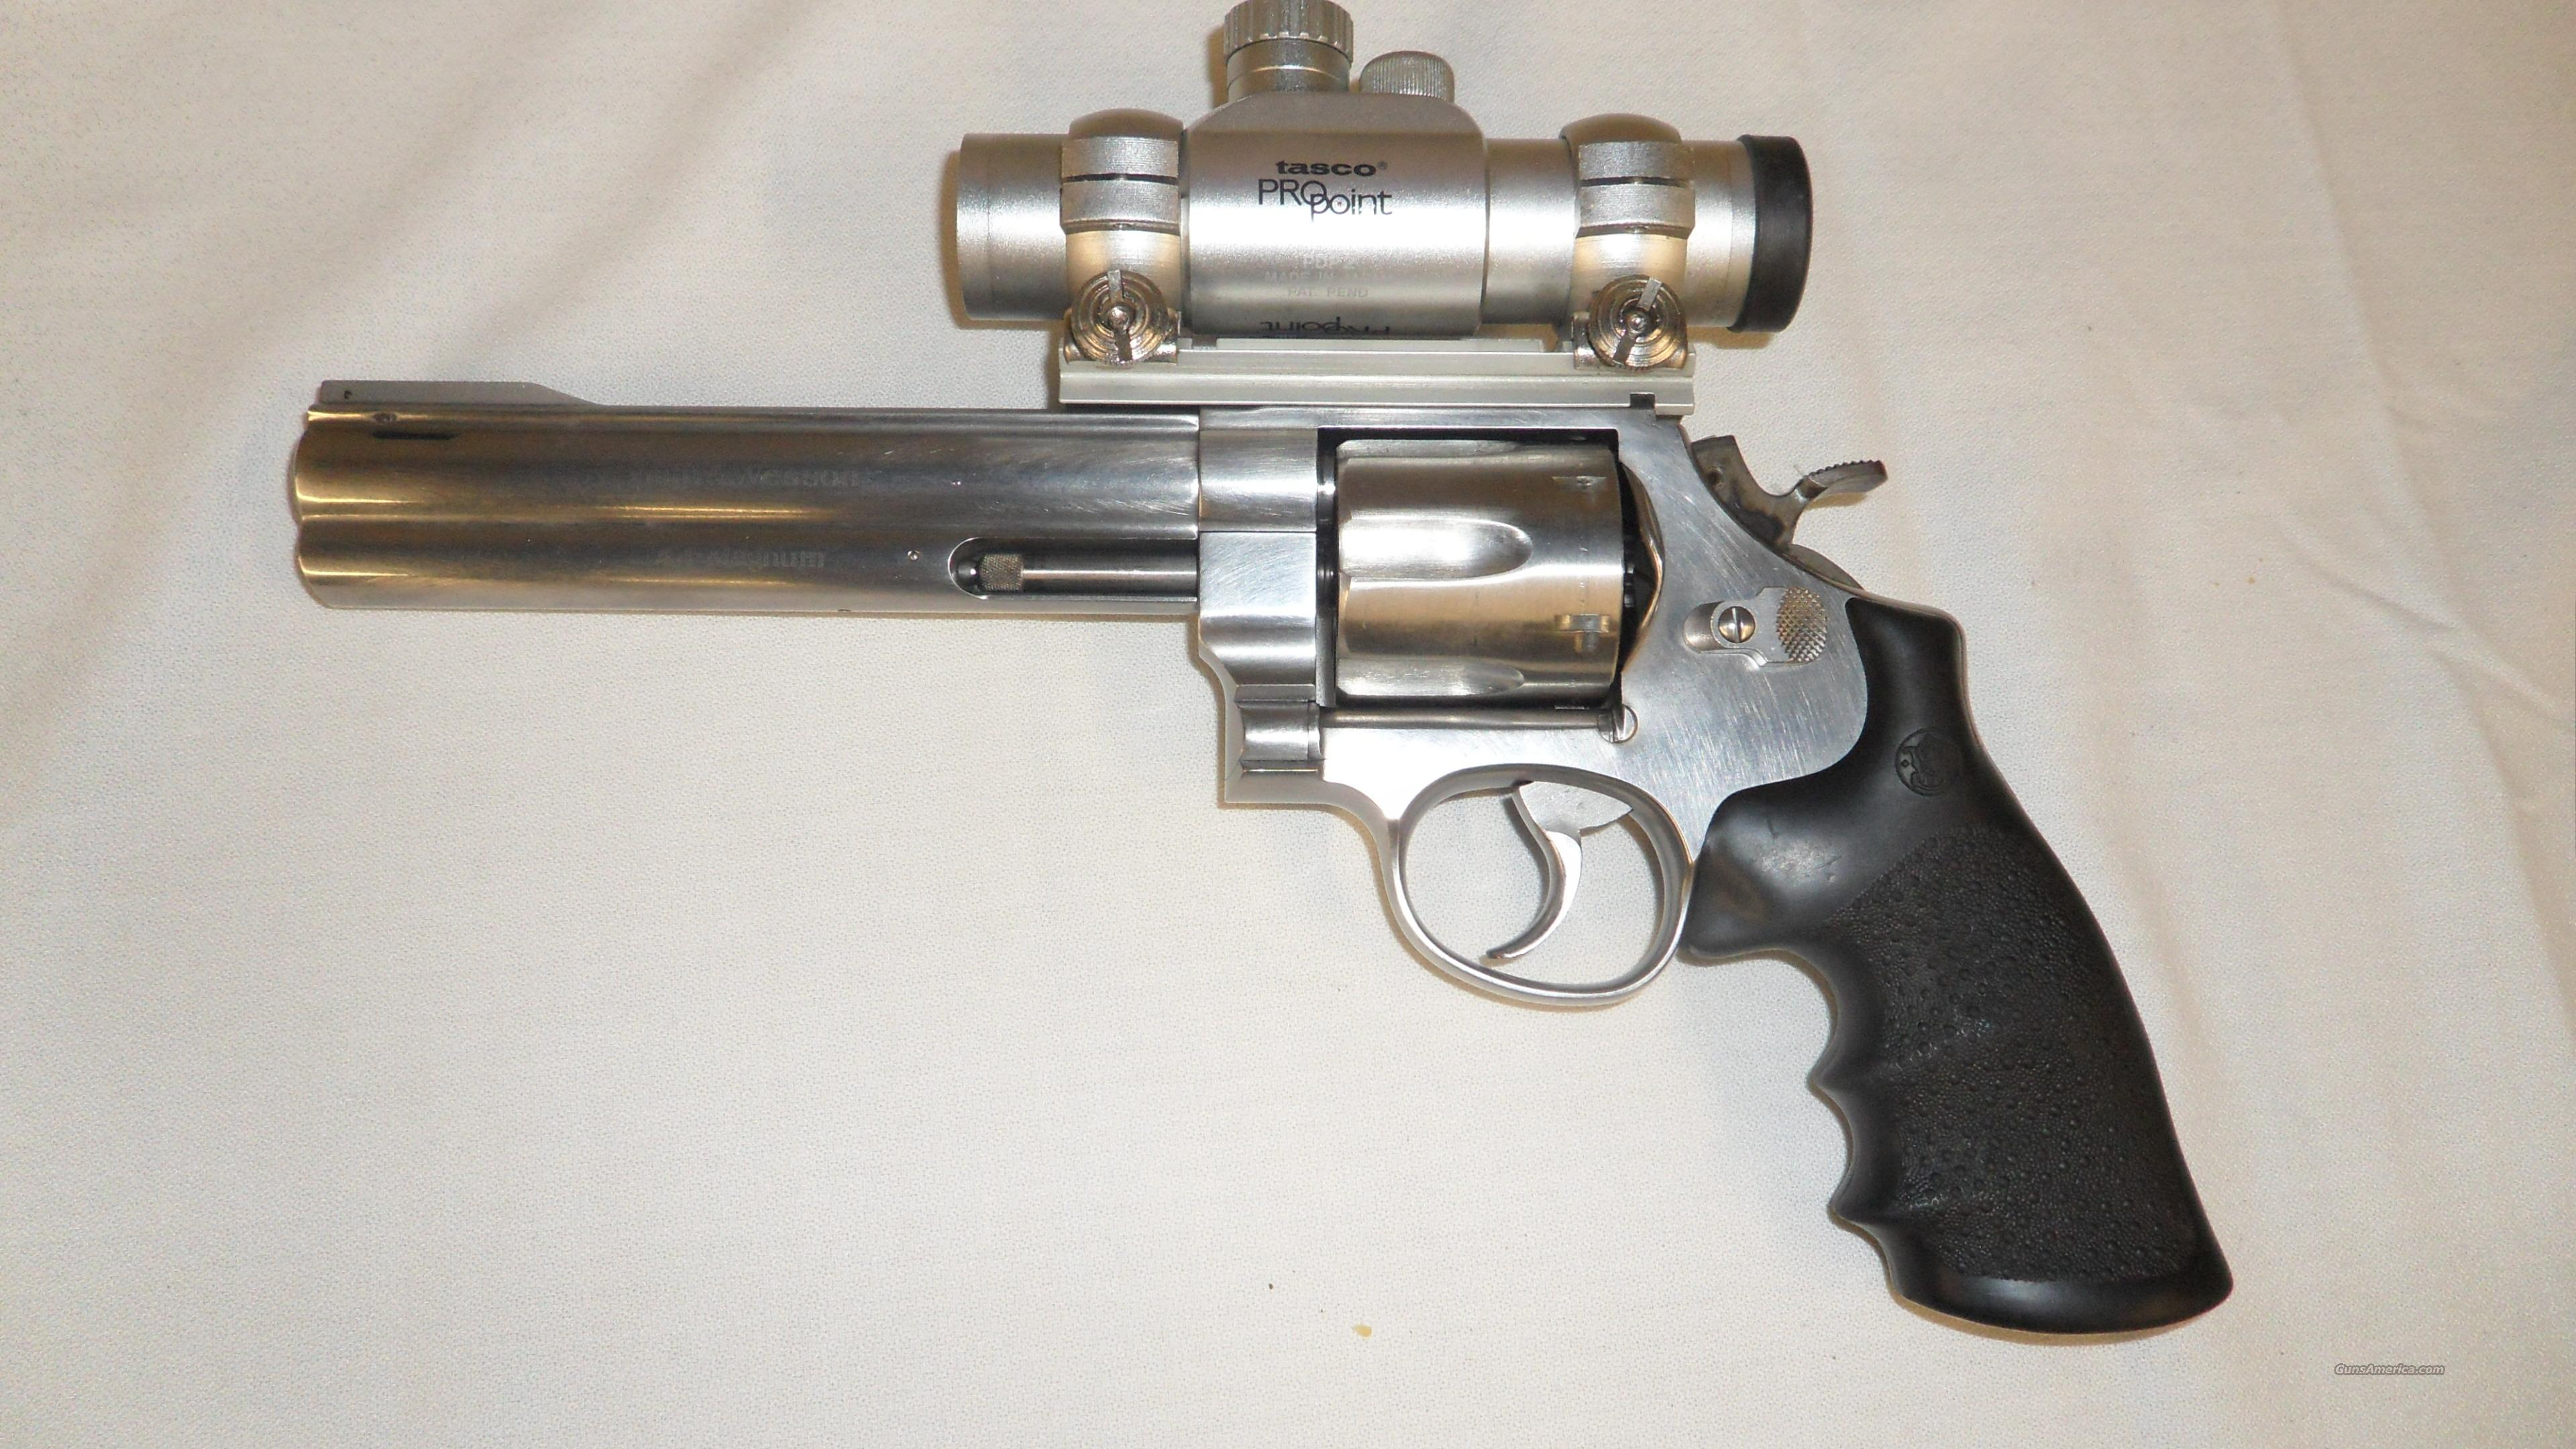 MOD. 629 SMITH & WESSON 44 MAG  Guns > Pistols > Smith & Wesson Revolvers > Model 629